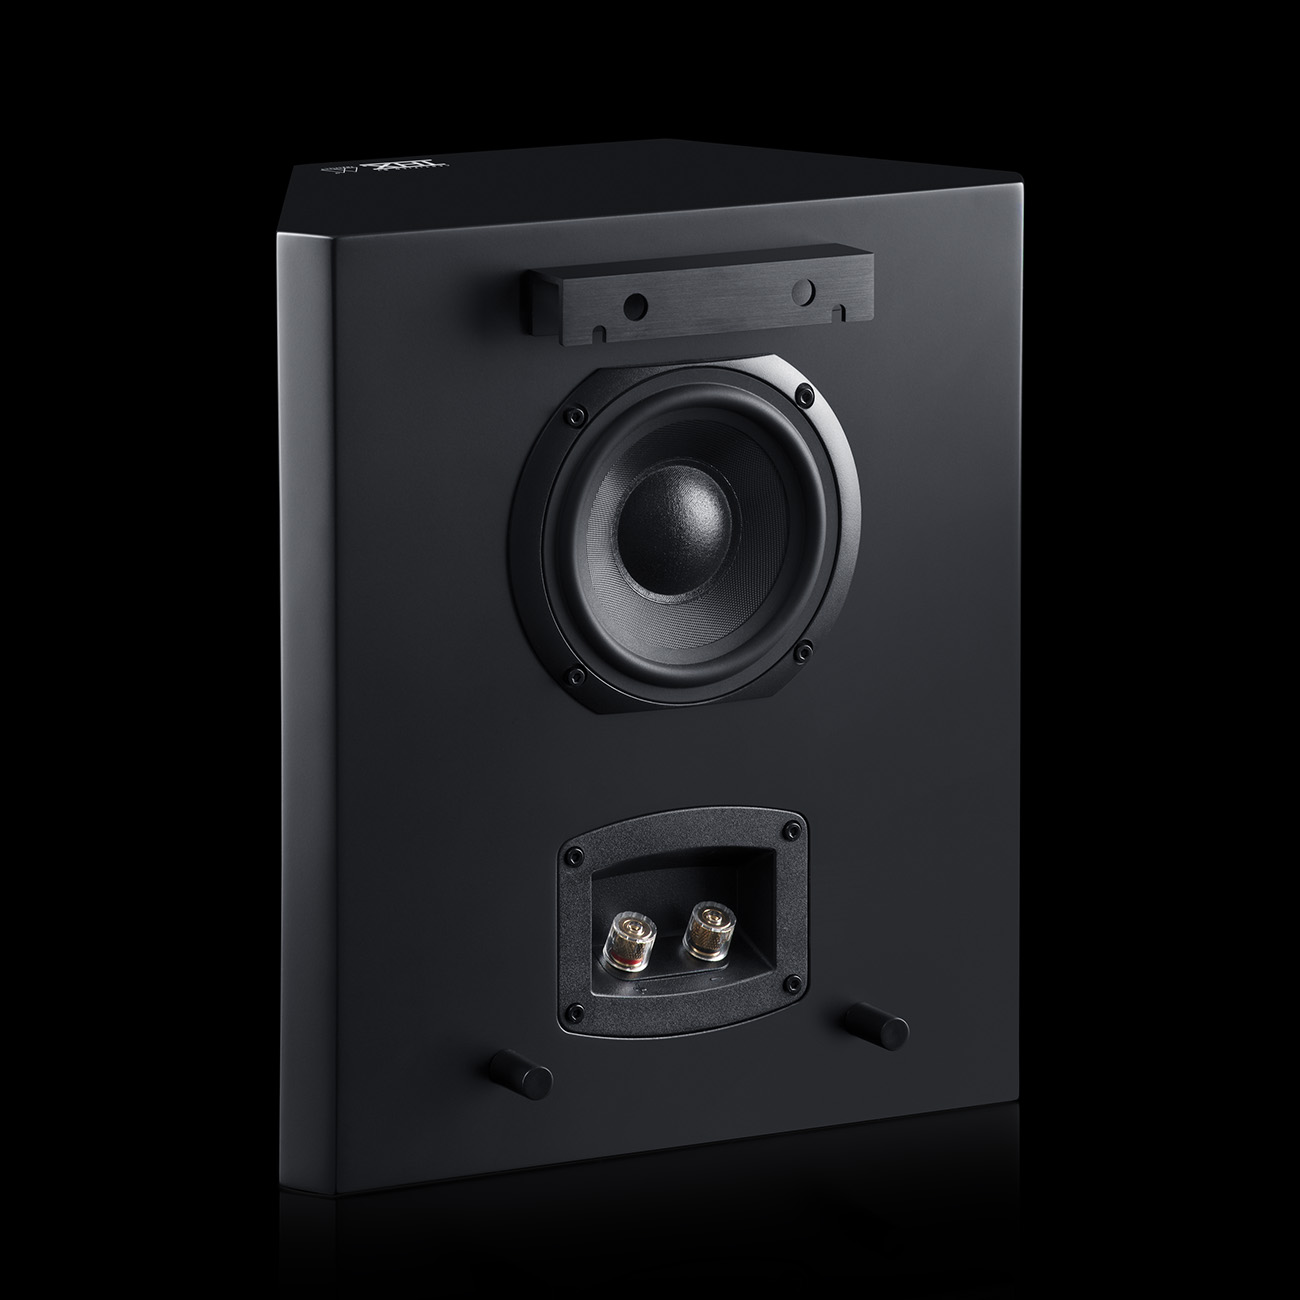 system-6-thx-select-dipol-back-angled-black-on-black-1300x1300x72.jpg